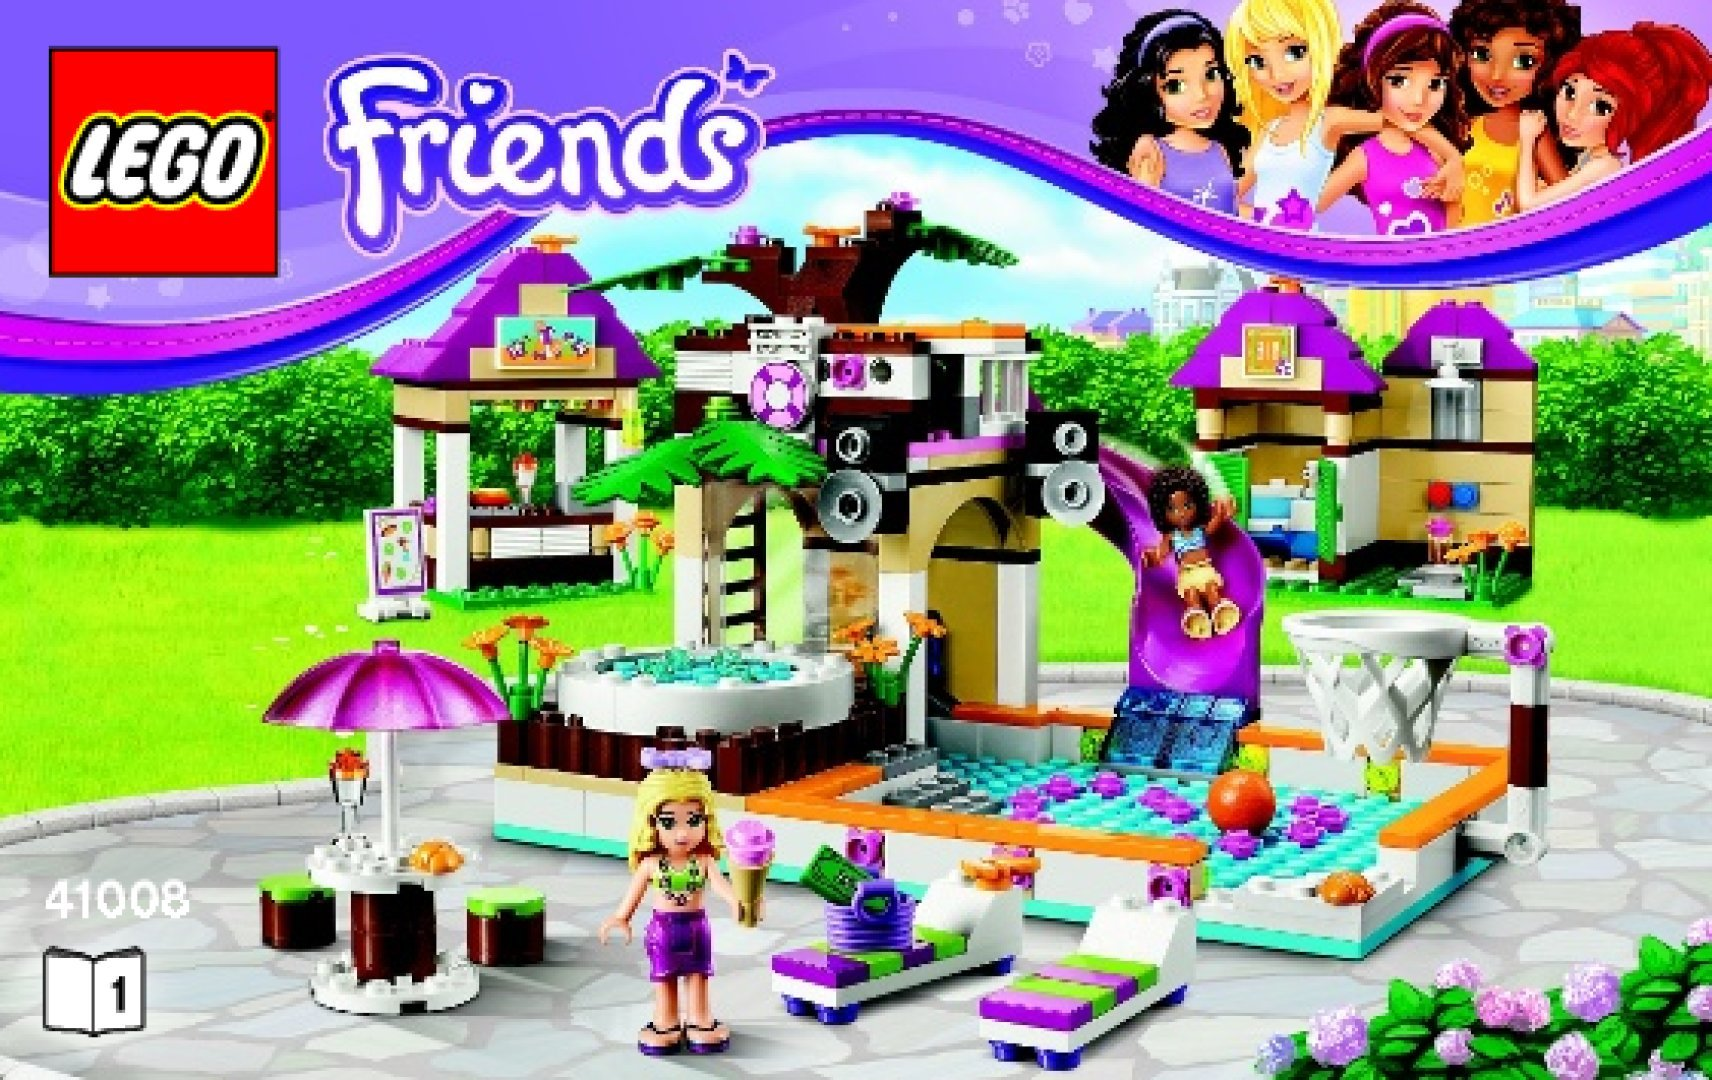 Lego Friends La Piscina Notice Instructions De Montage Lego Friends 41008